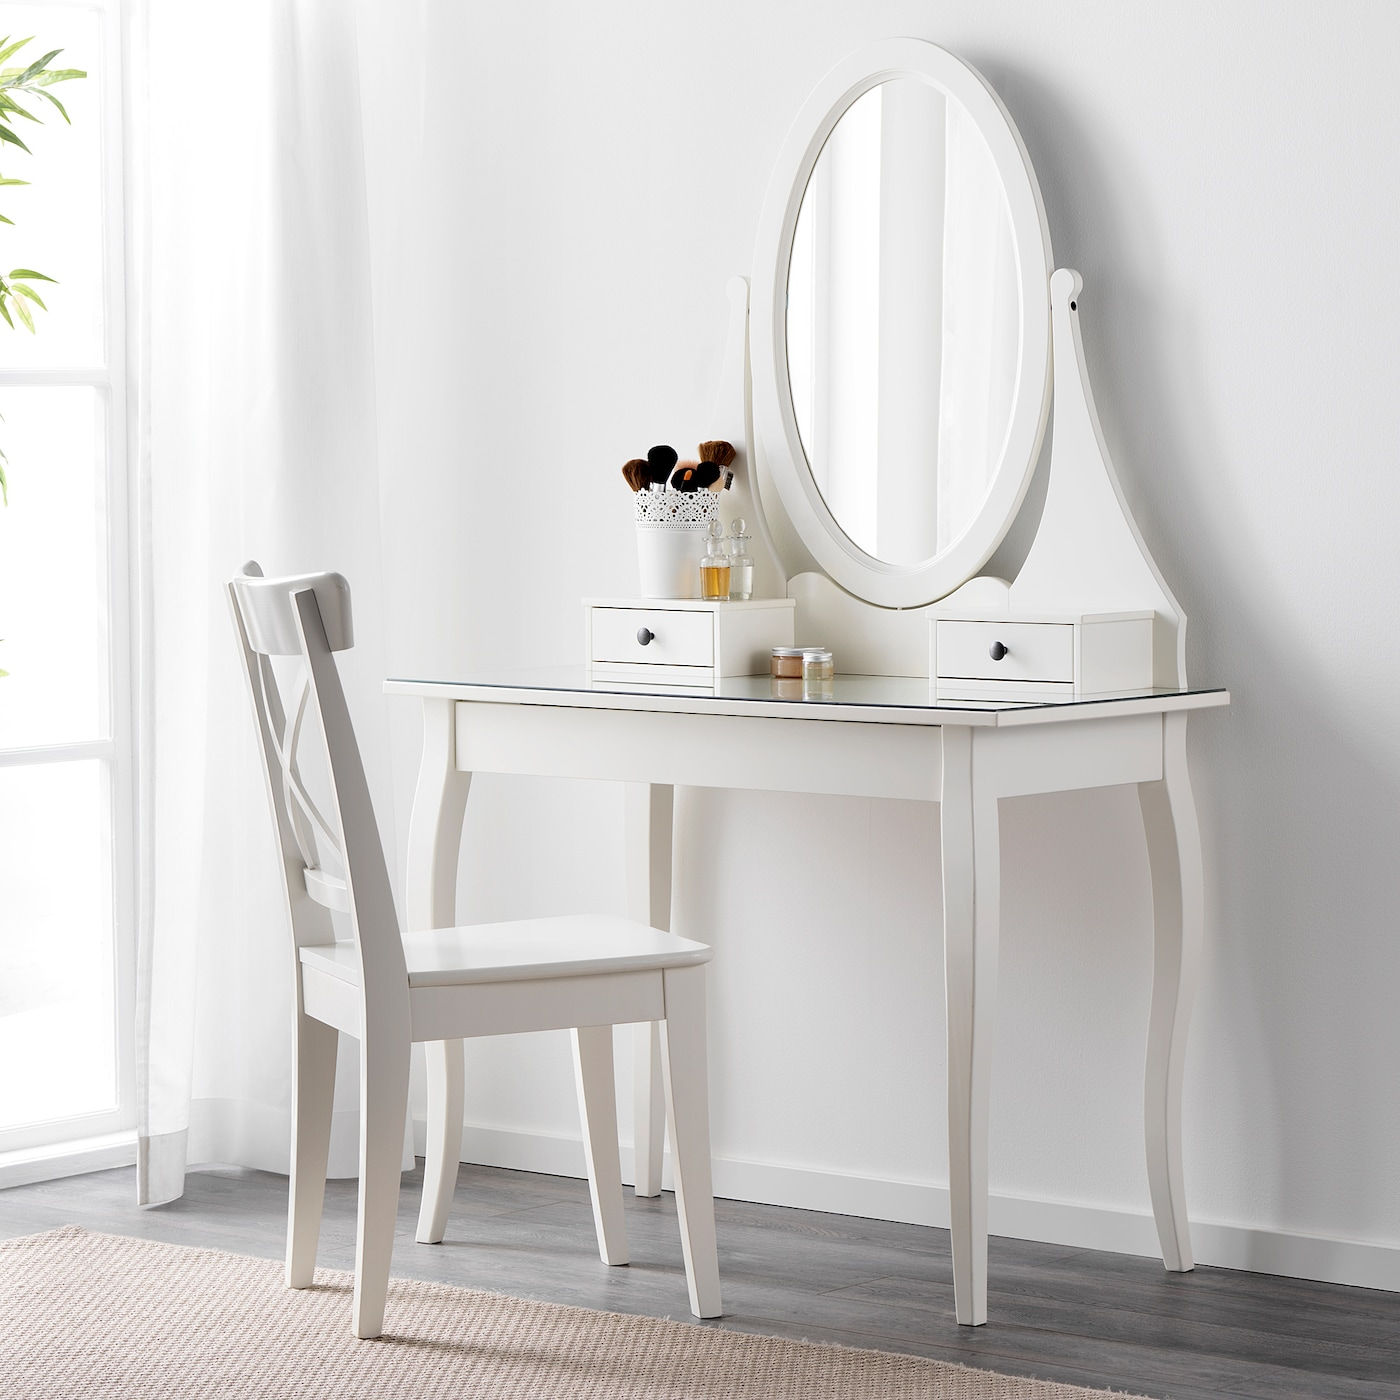 Hemnes Dressing Table With Mirror White 39 3 8x19 5 8 Ikea